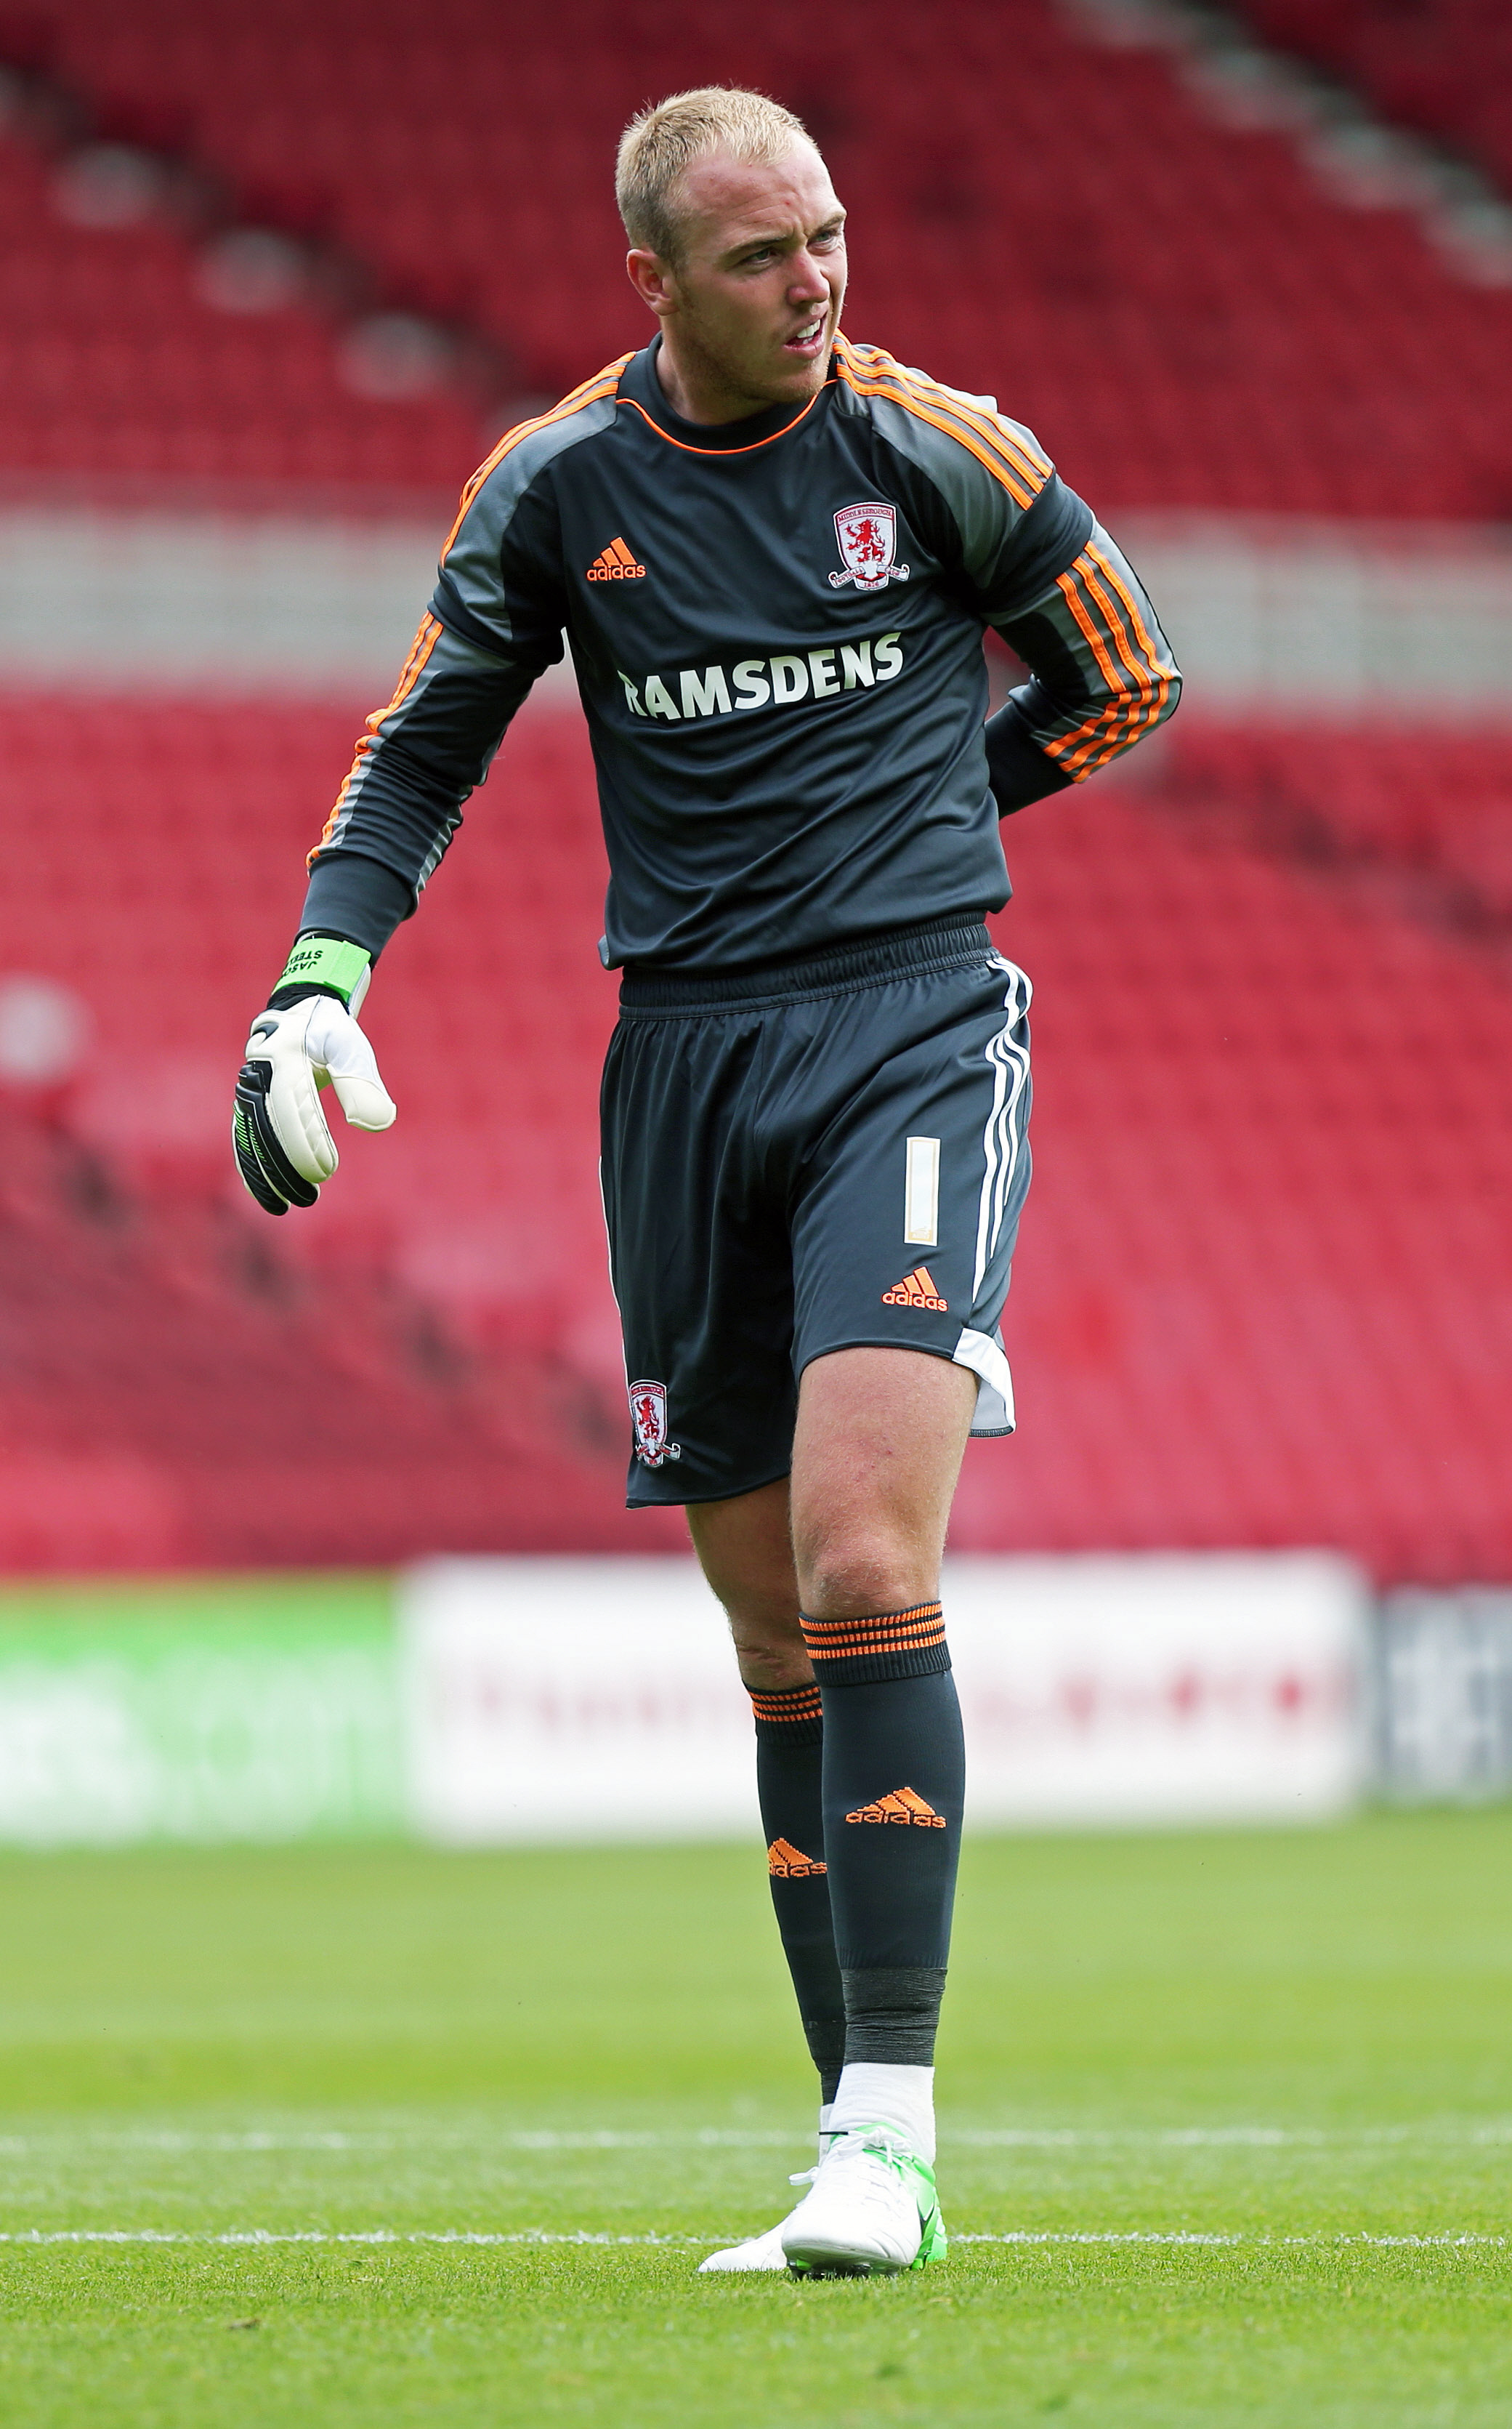 Boro keeper Jason Steele has signed for Rovers